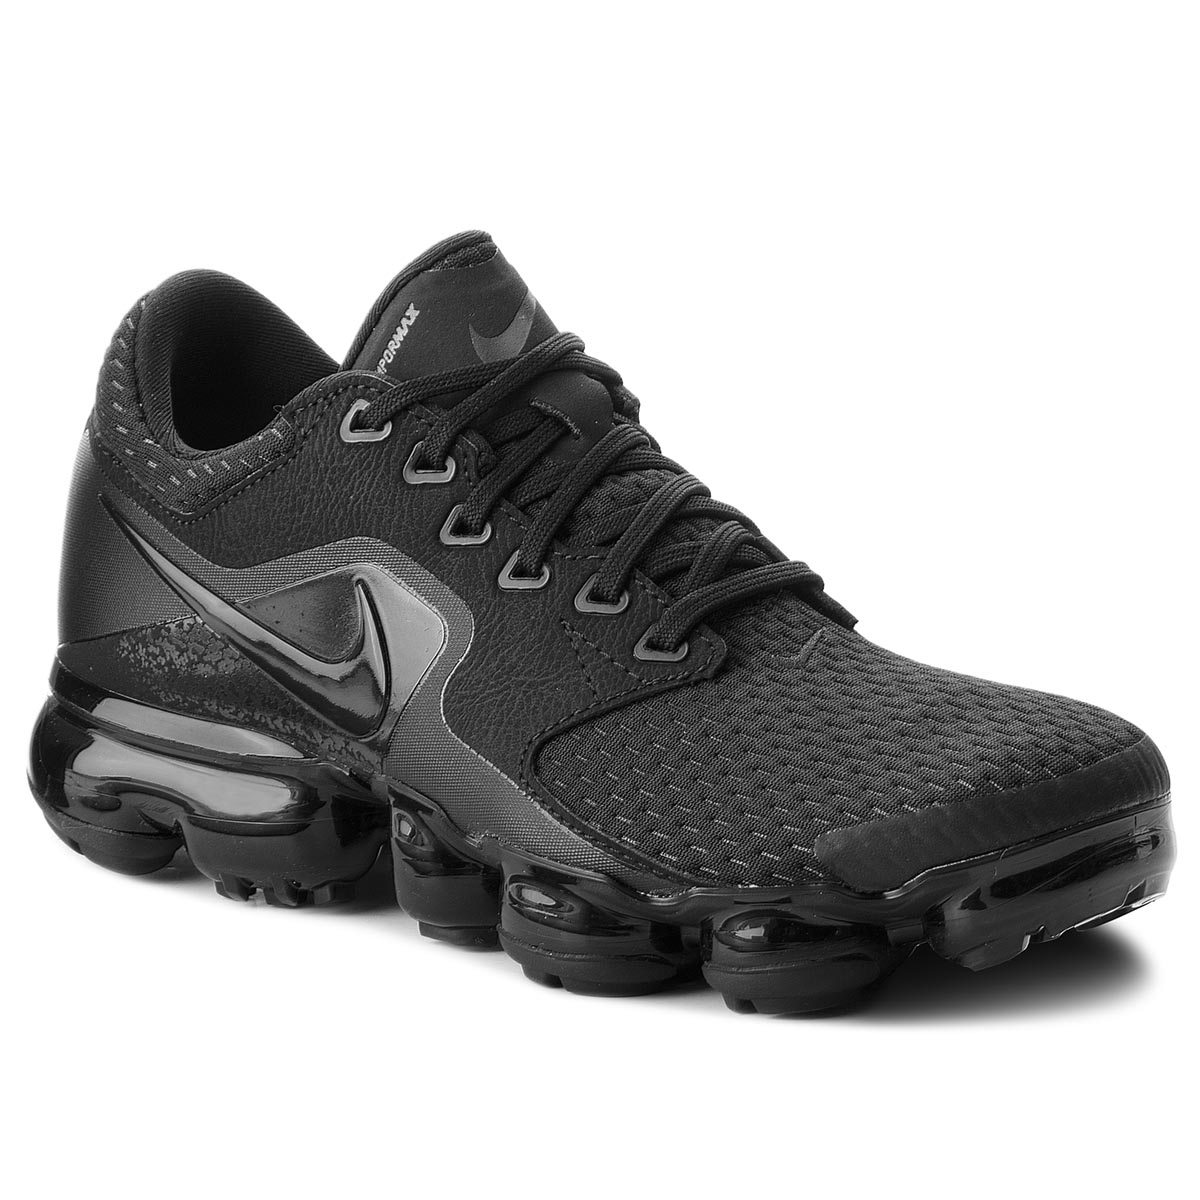 Buty NIKE - Air Vapormax AH9045 002 Black/Anthracite